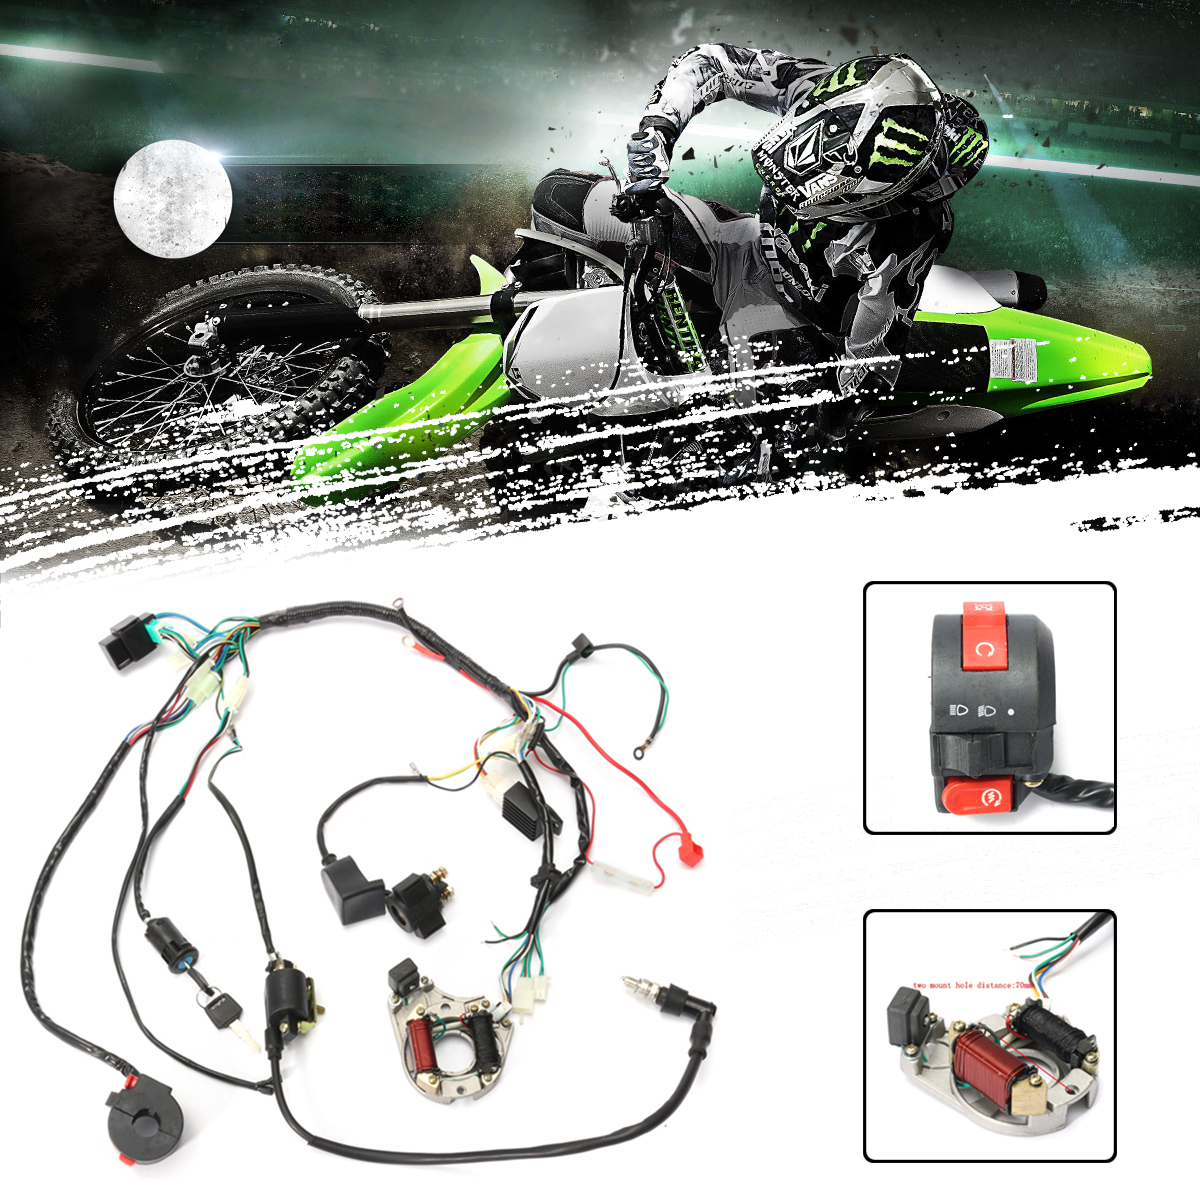 1 set wire harness wiring cdi assembly for motorcycleaccessorie 50 70 90 110cc 125cc atv quad coolster go kart